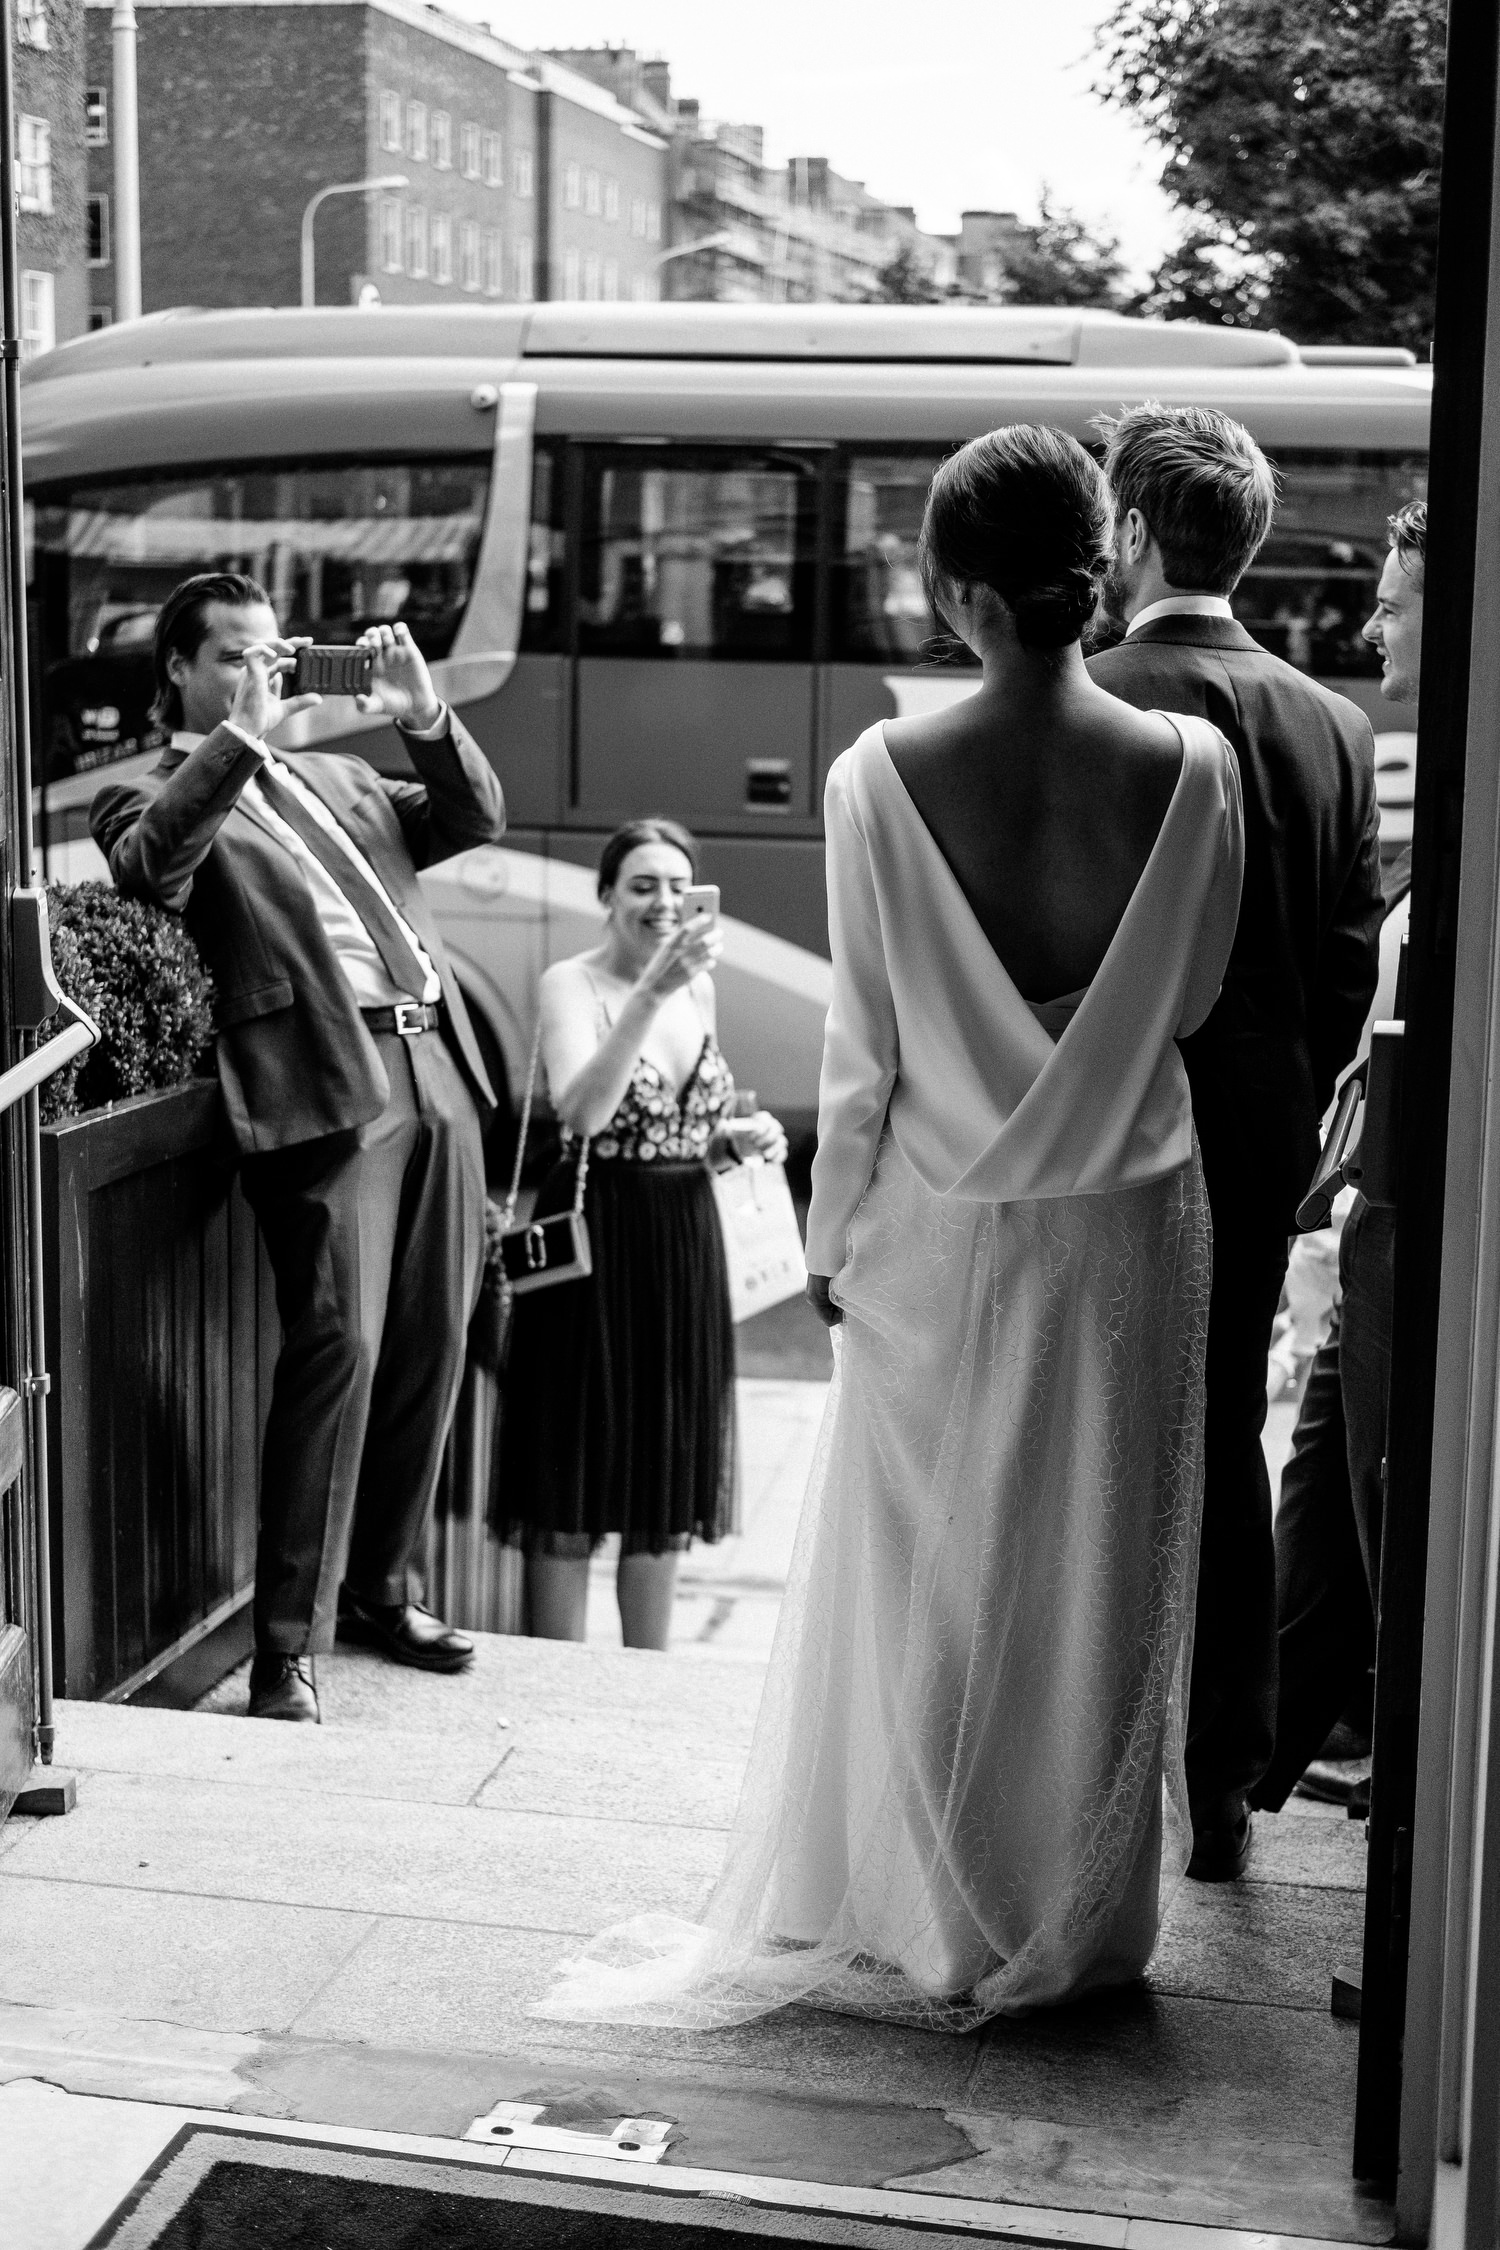 dmp0471_photographer_wedding_dublin_david_mcclelland_candid_photography_fujifilm_shelbourne_reception_documentary